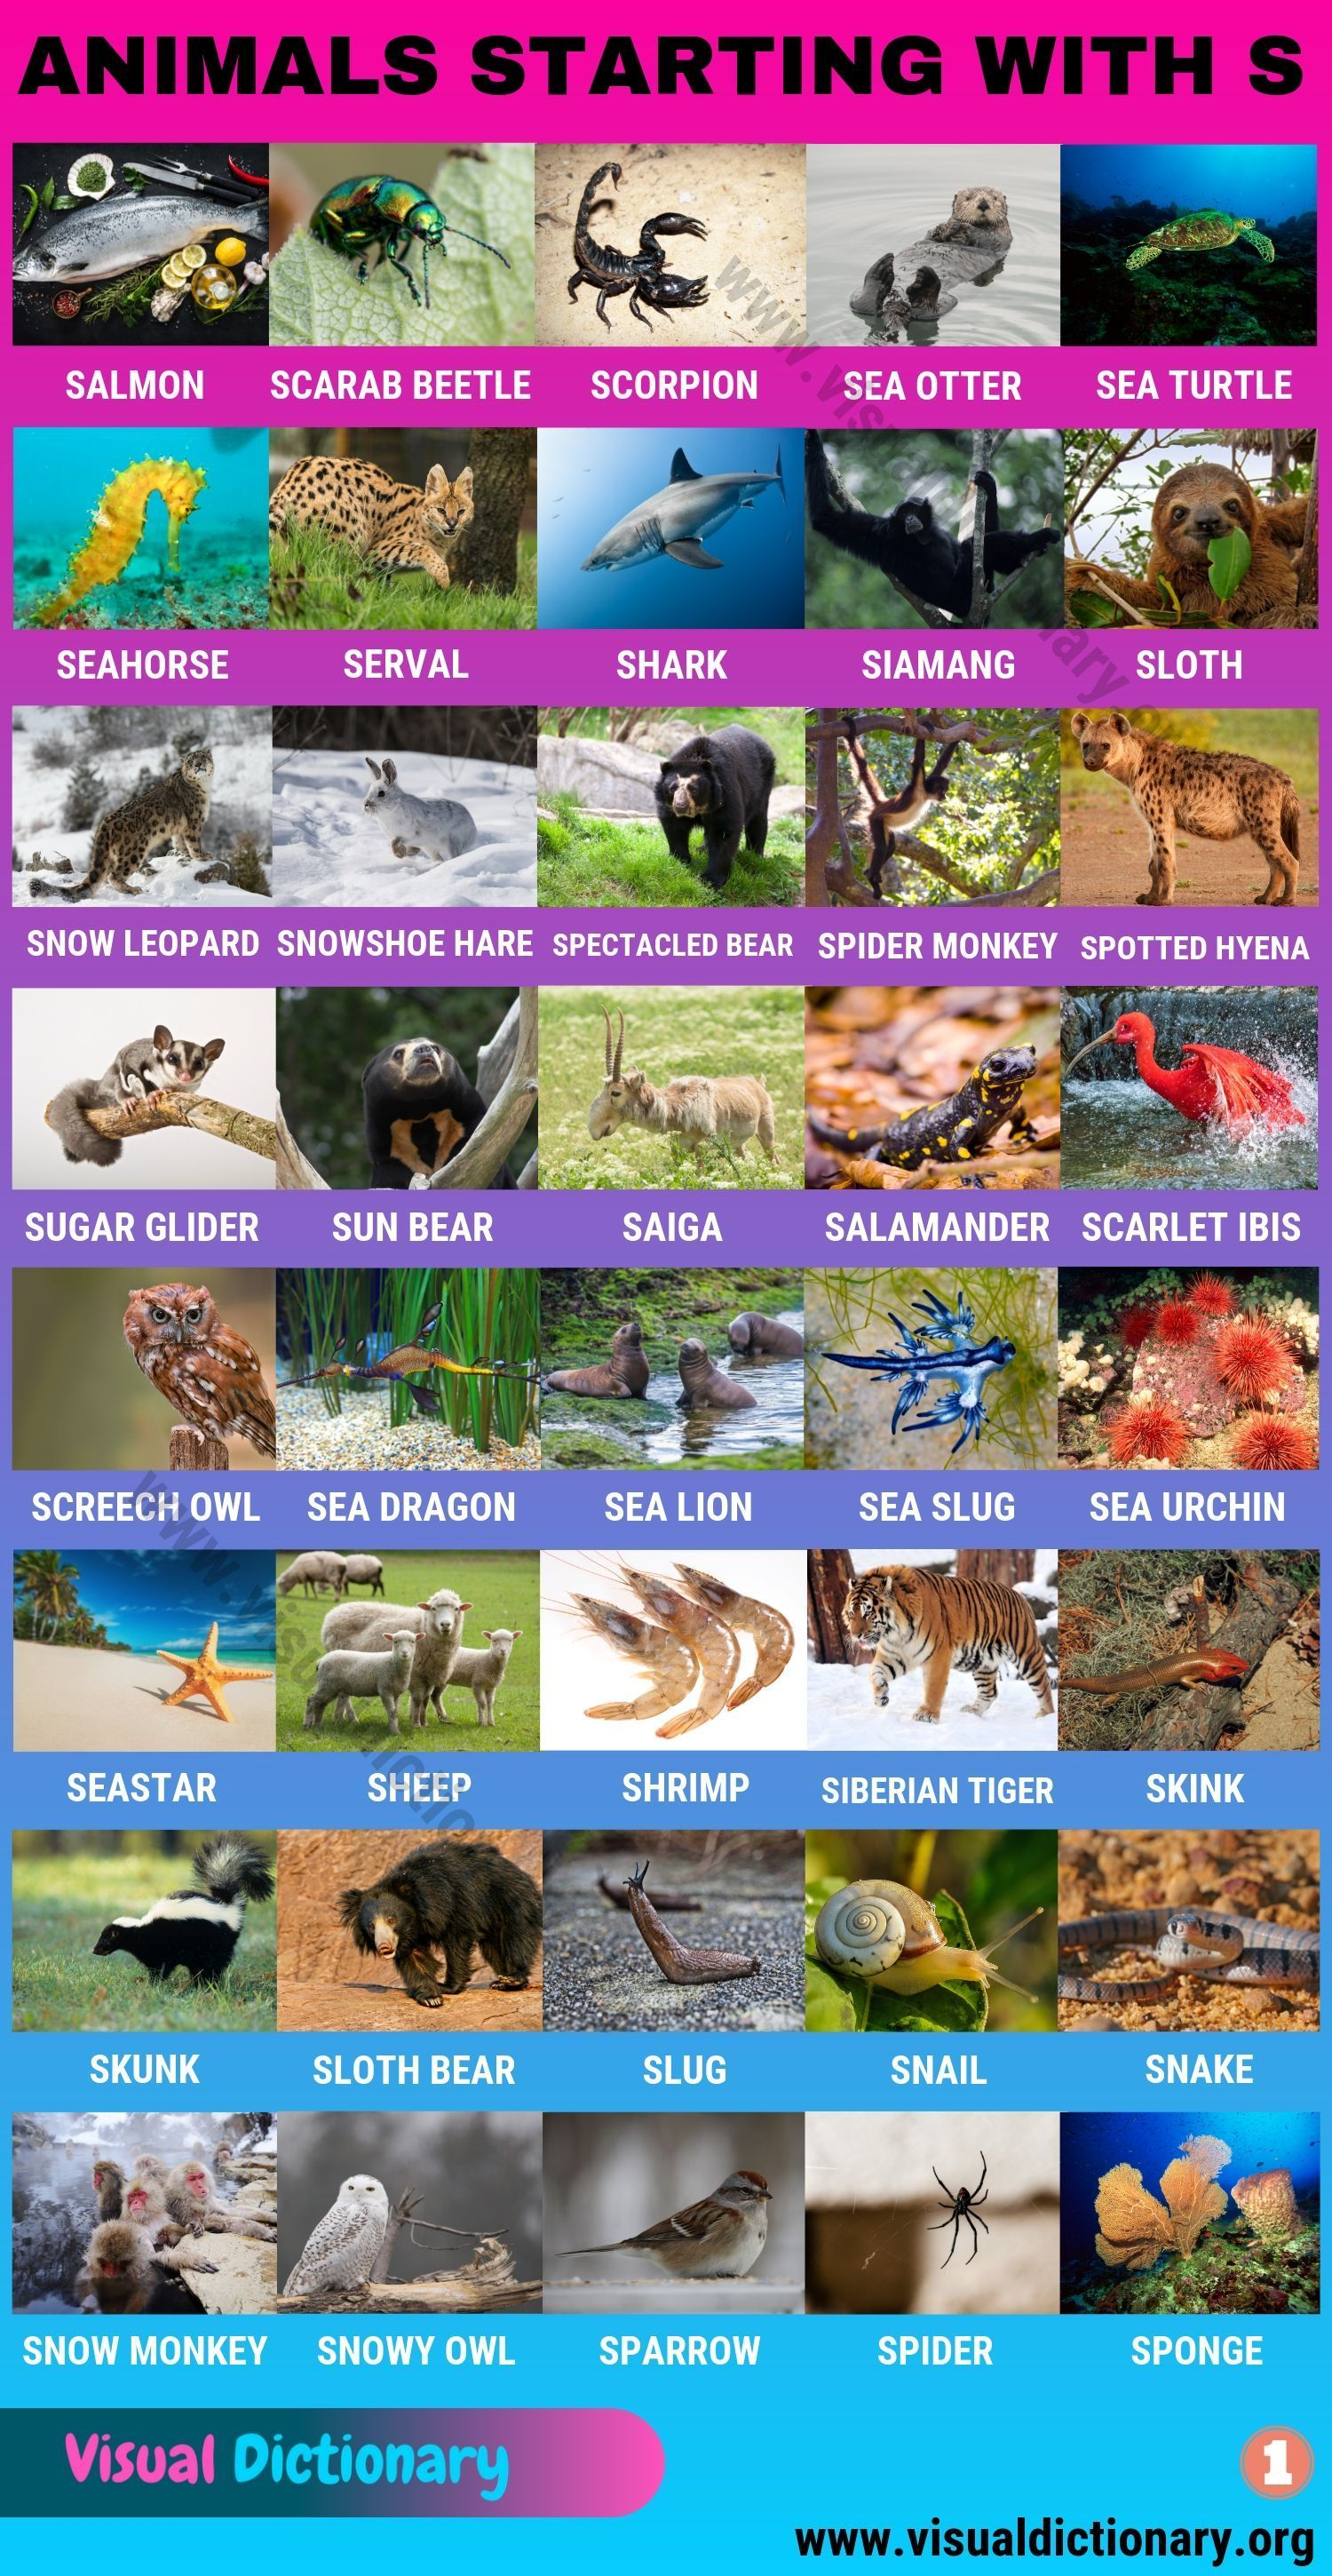 Animals That Start With S Huge List Of 120 Animals Starting With S Visual Dictionary Visual Dictionary Animals Animals Name In English